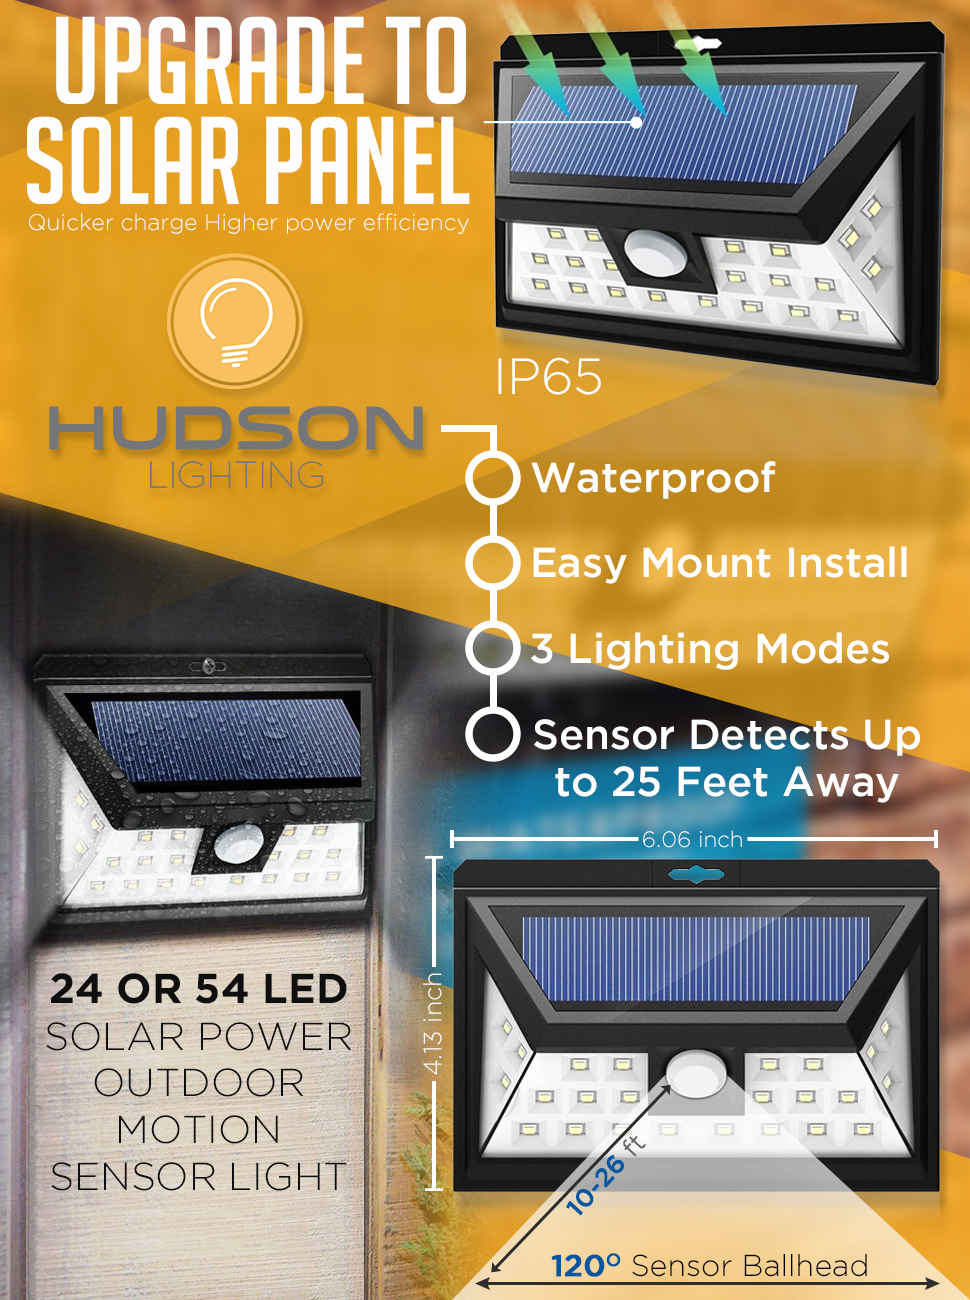 Hudson lighting solar lights outdoor patio deck lights 54 led 500 hudson lighting 54 led solar motion light purchase with confidence mozeypictures Image collections